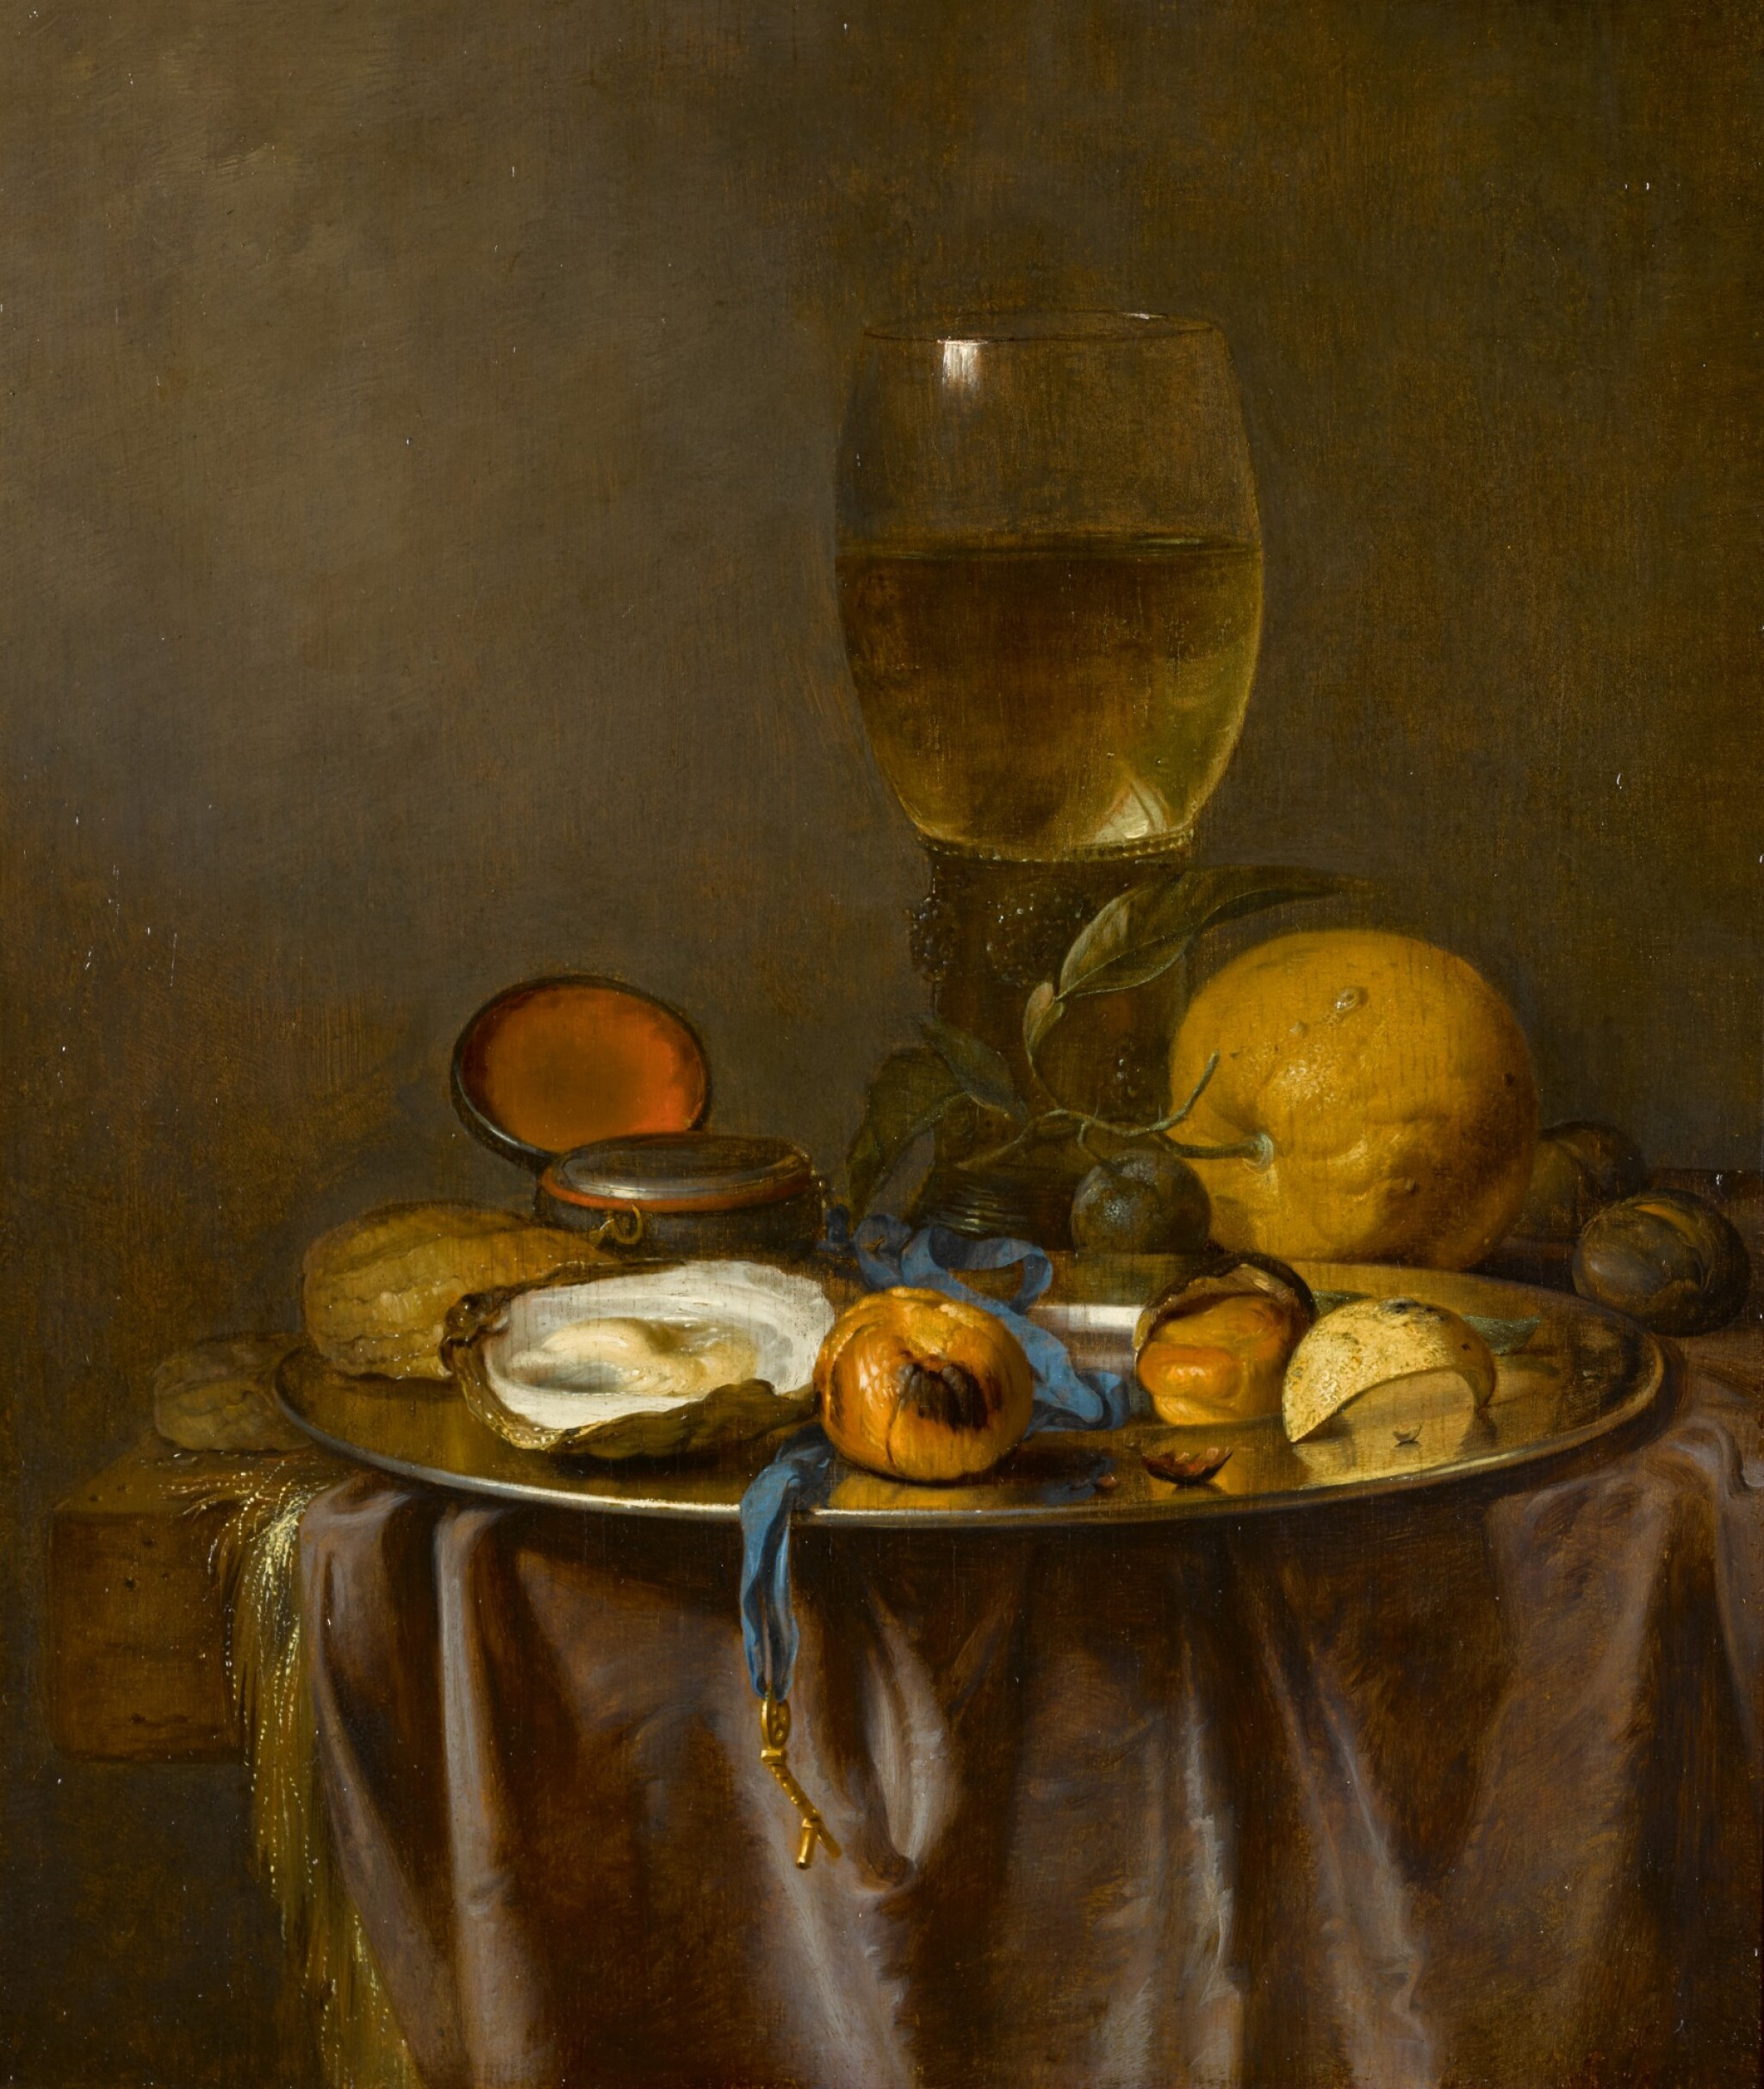 View 1 of Lot 158. Still life with a roemer, timepiece, oyster and fruit.